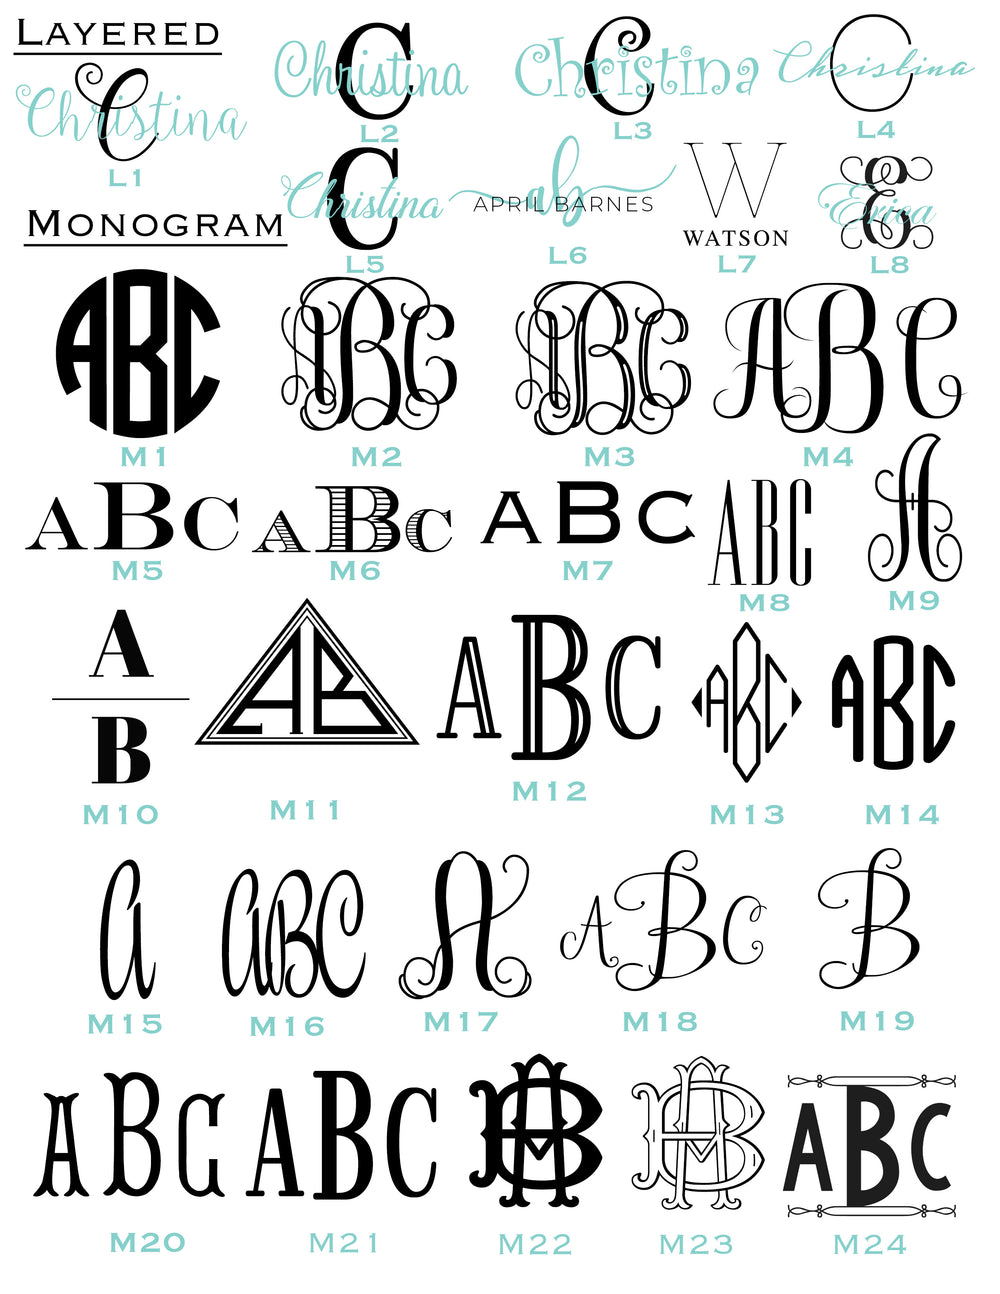 Monogram Font and Layered Font Options